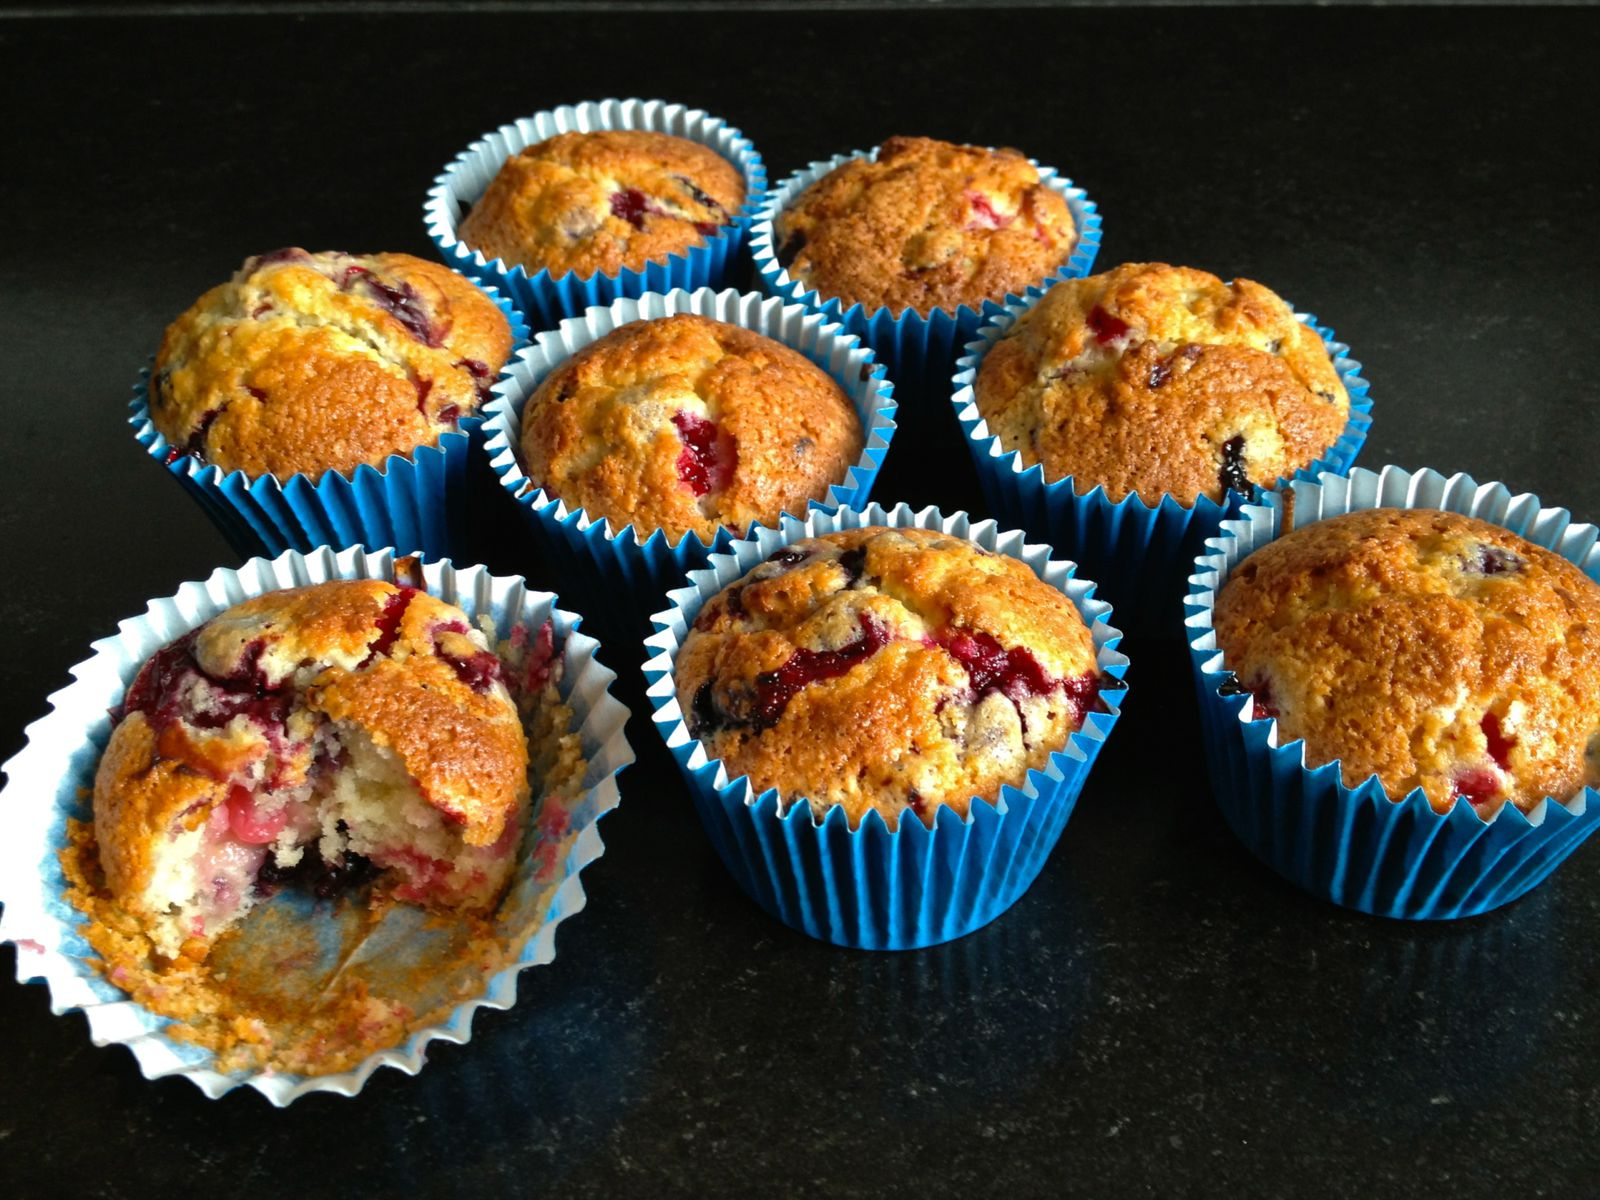 Muffins ax fruits rouges